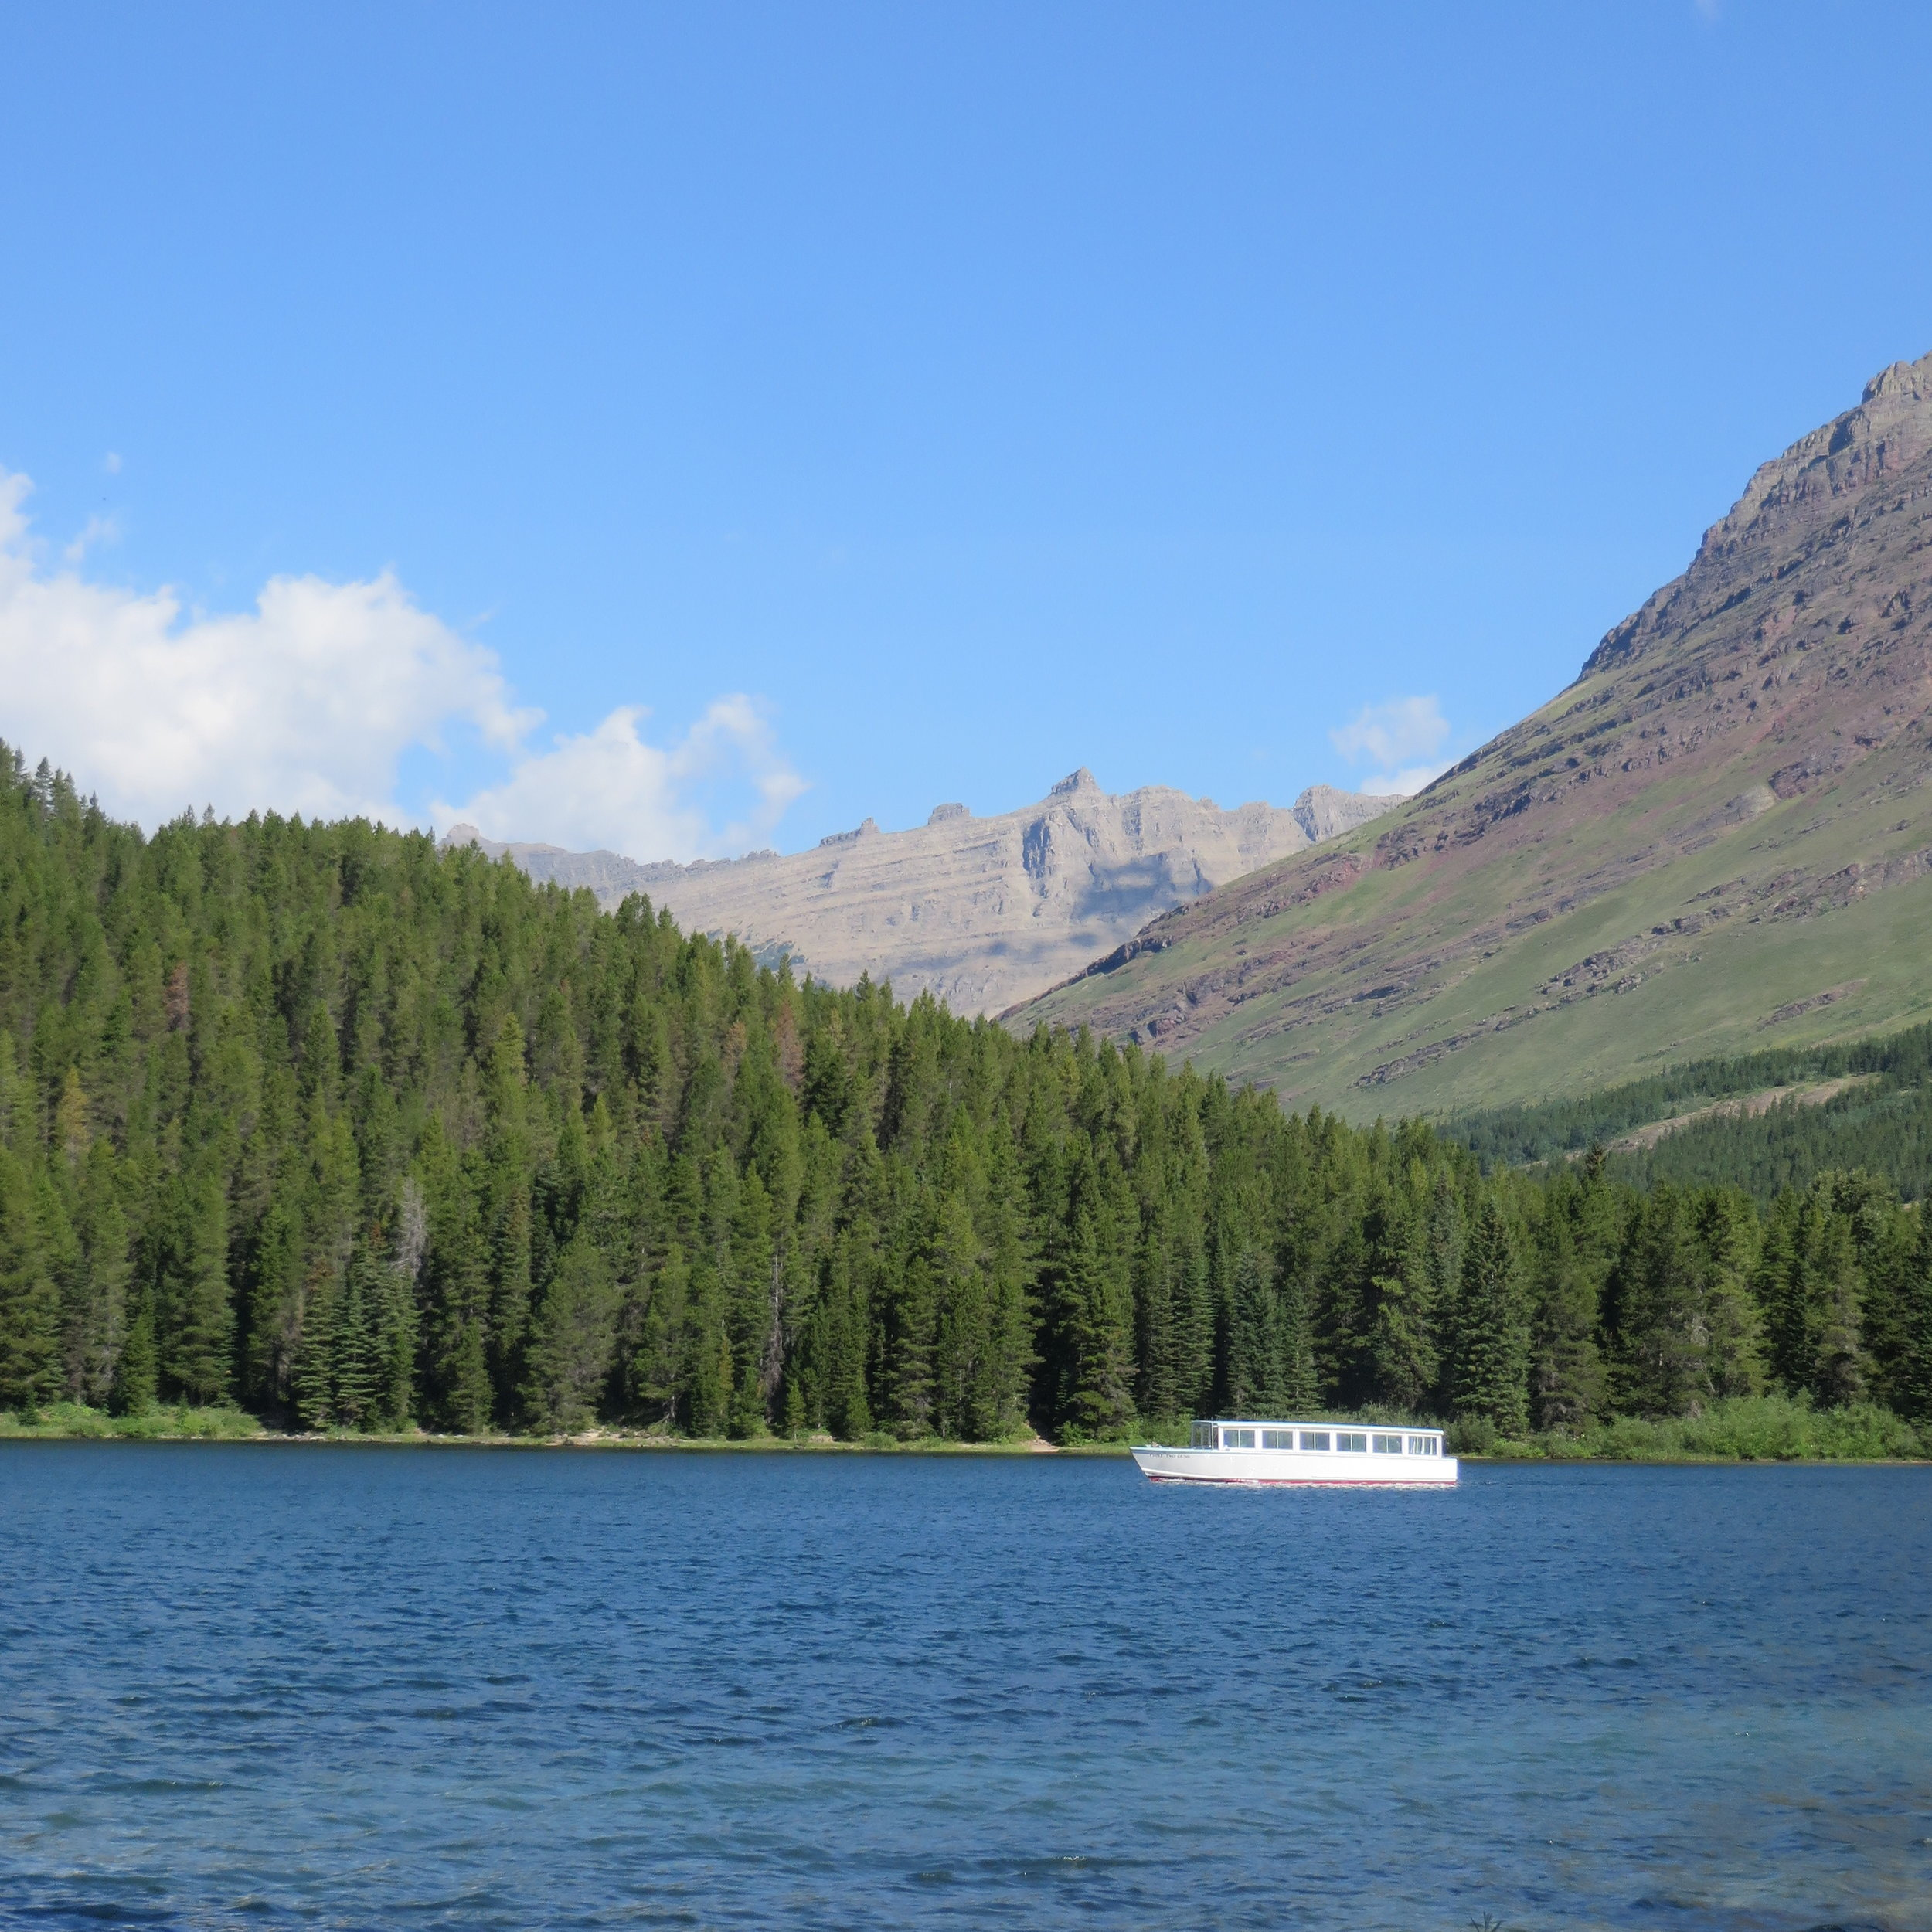 Chief Two Guns crossing Swiftcurrent Lake in Many Glacier.